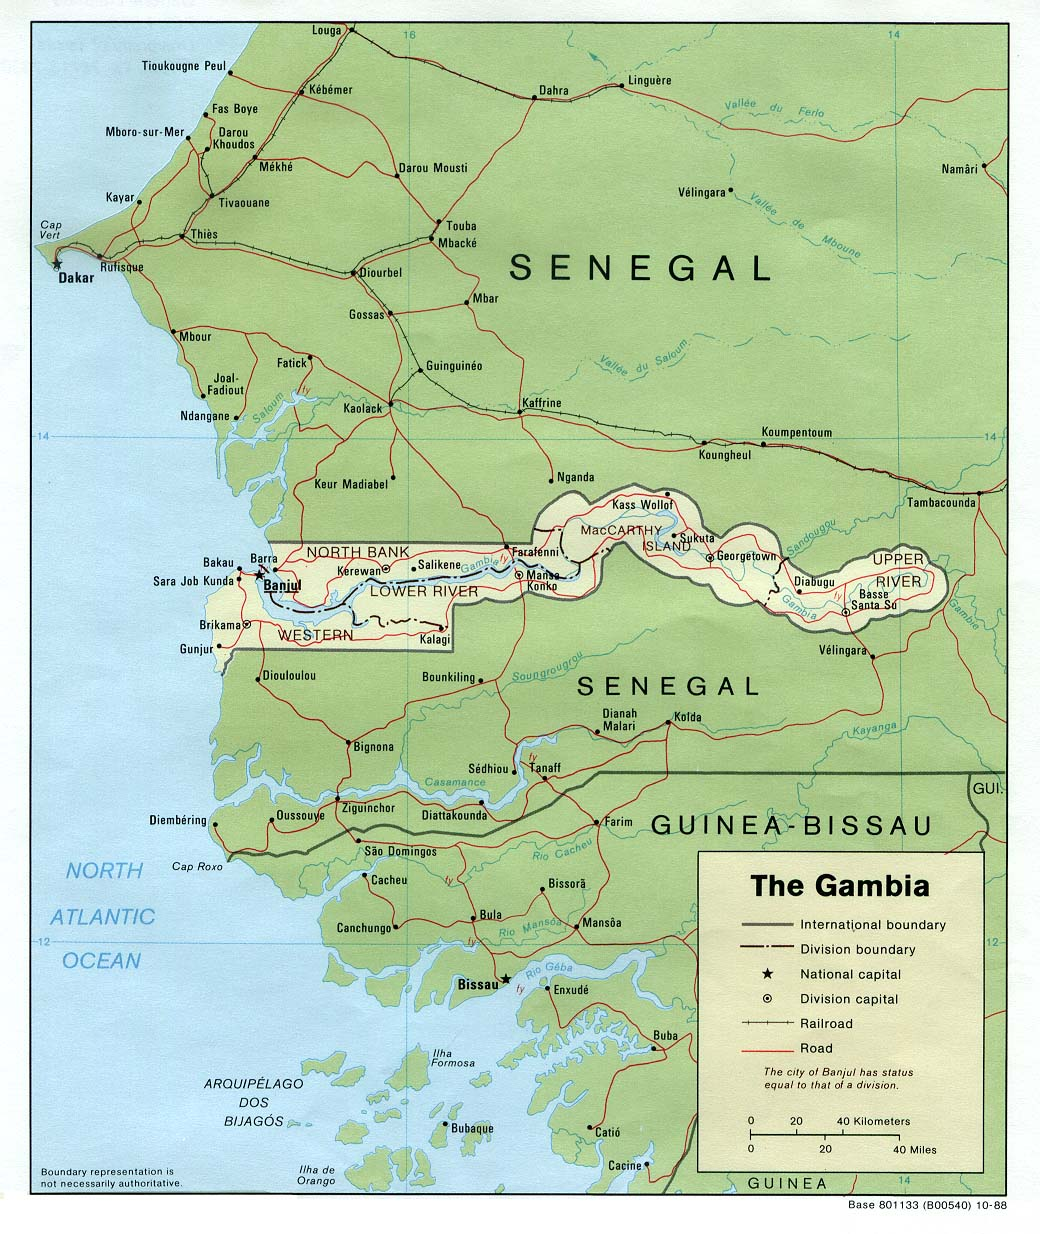 The Gambia (Map courtesy of Wikipedia)